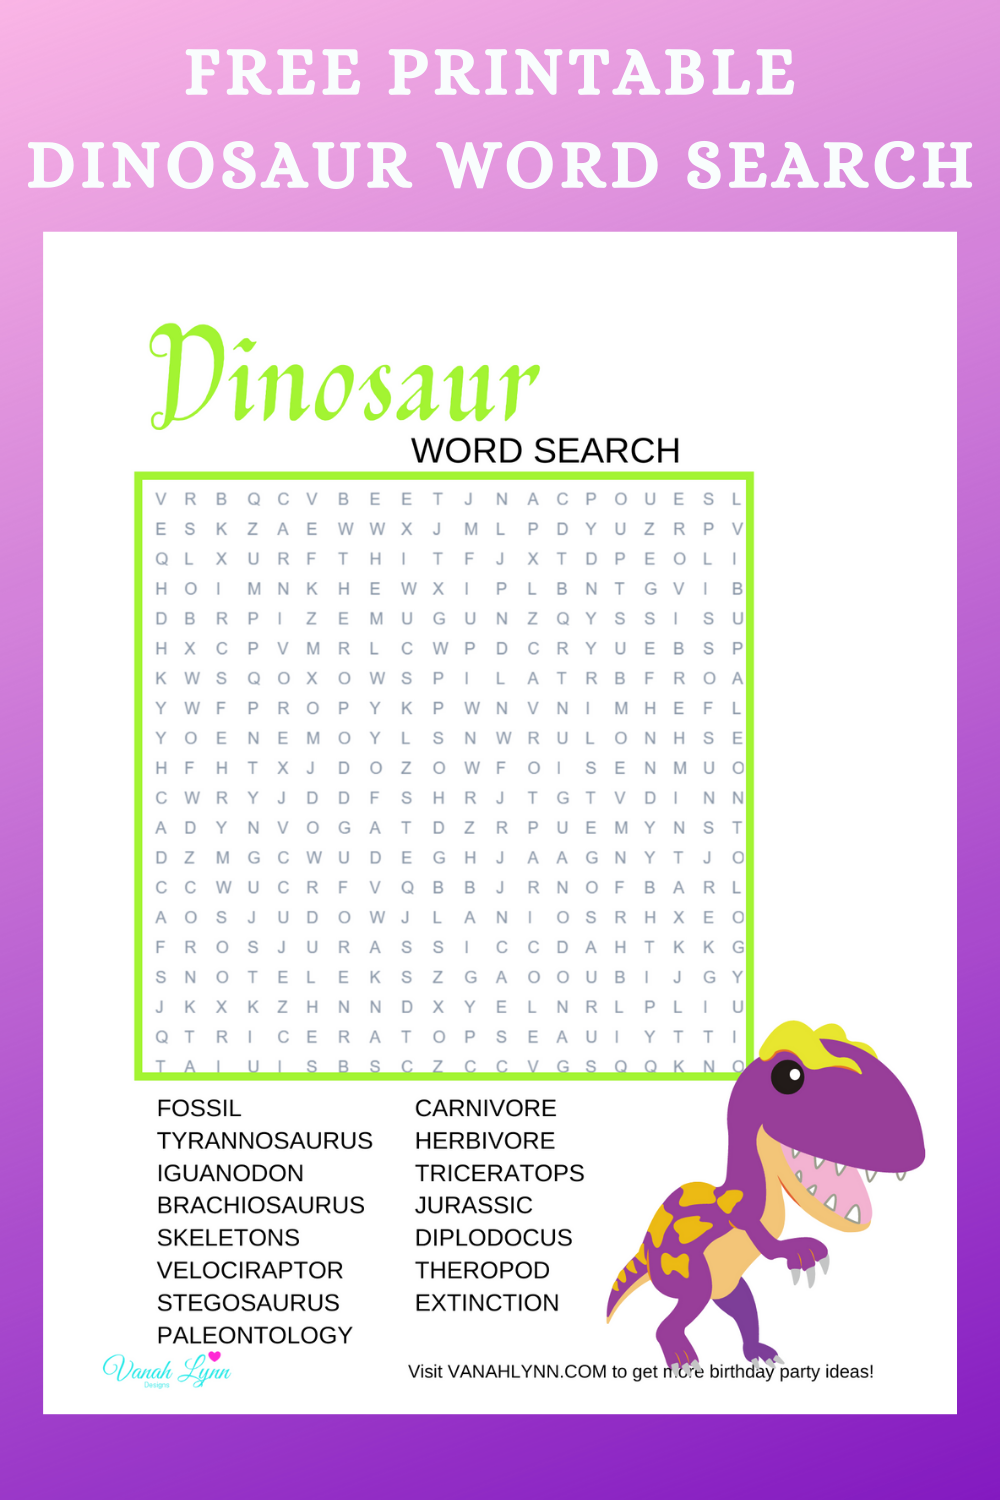 free download: dinosaur themed birthday party activity ideas